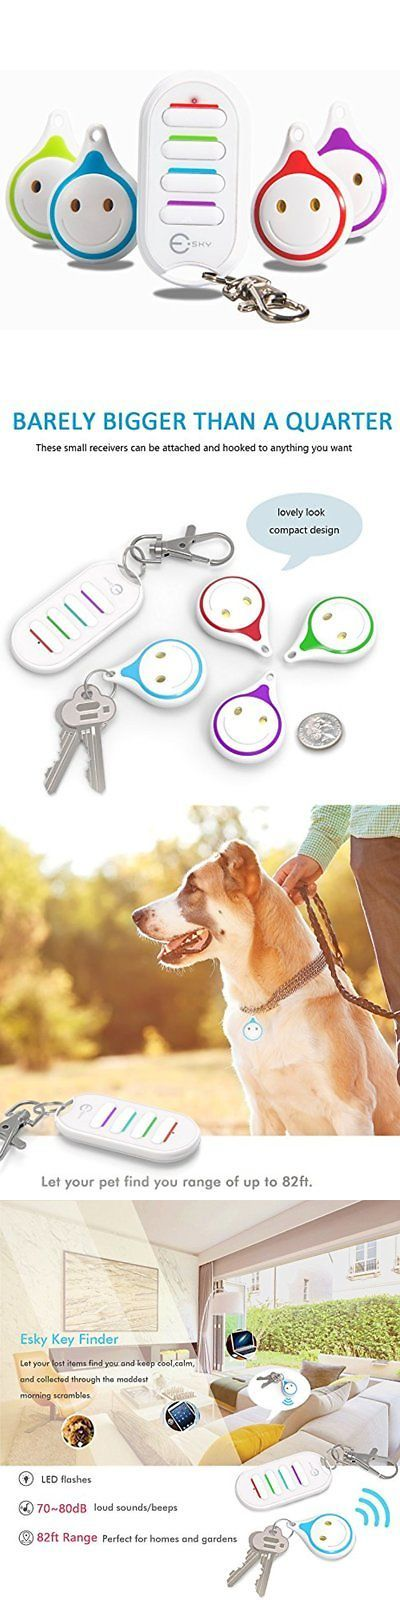 LED Light Key Chains: Wireless Rf Key Tags And Chains Item Locator Finder Phone Tracker Anything Cat -> BUY IT NOW ONLY: $30.75 on eBay!